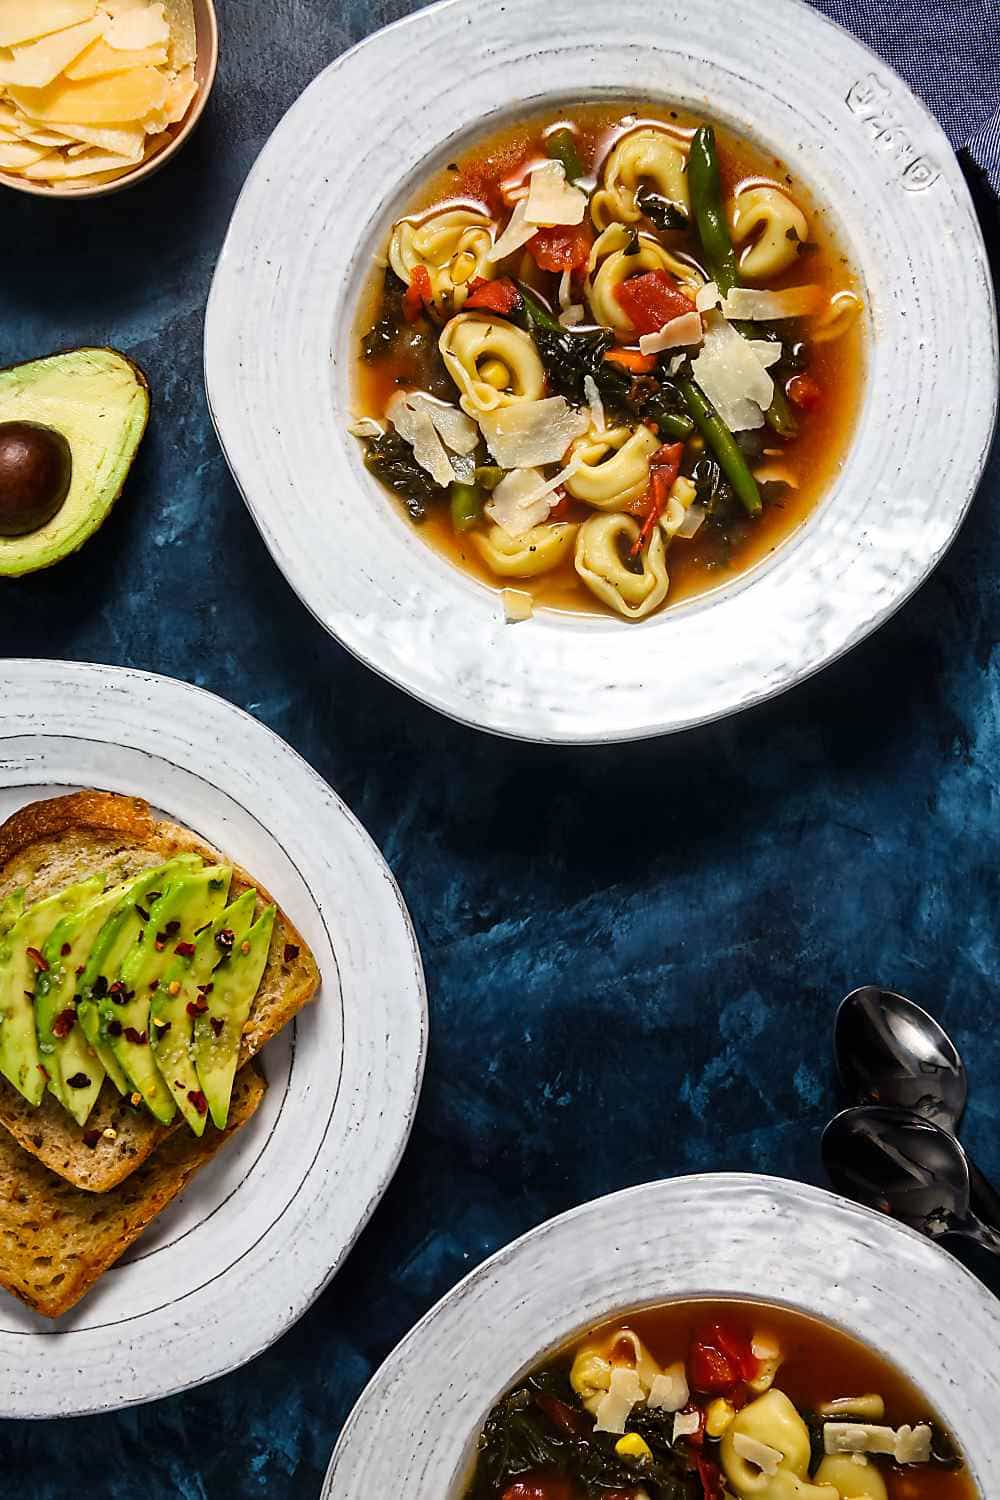 30-Minute Tortellini Vegetable Soup Recipe with Avocado Toast